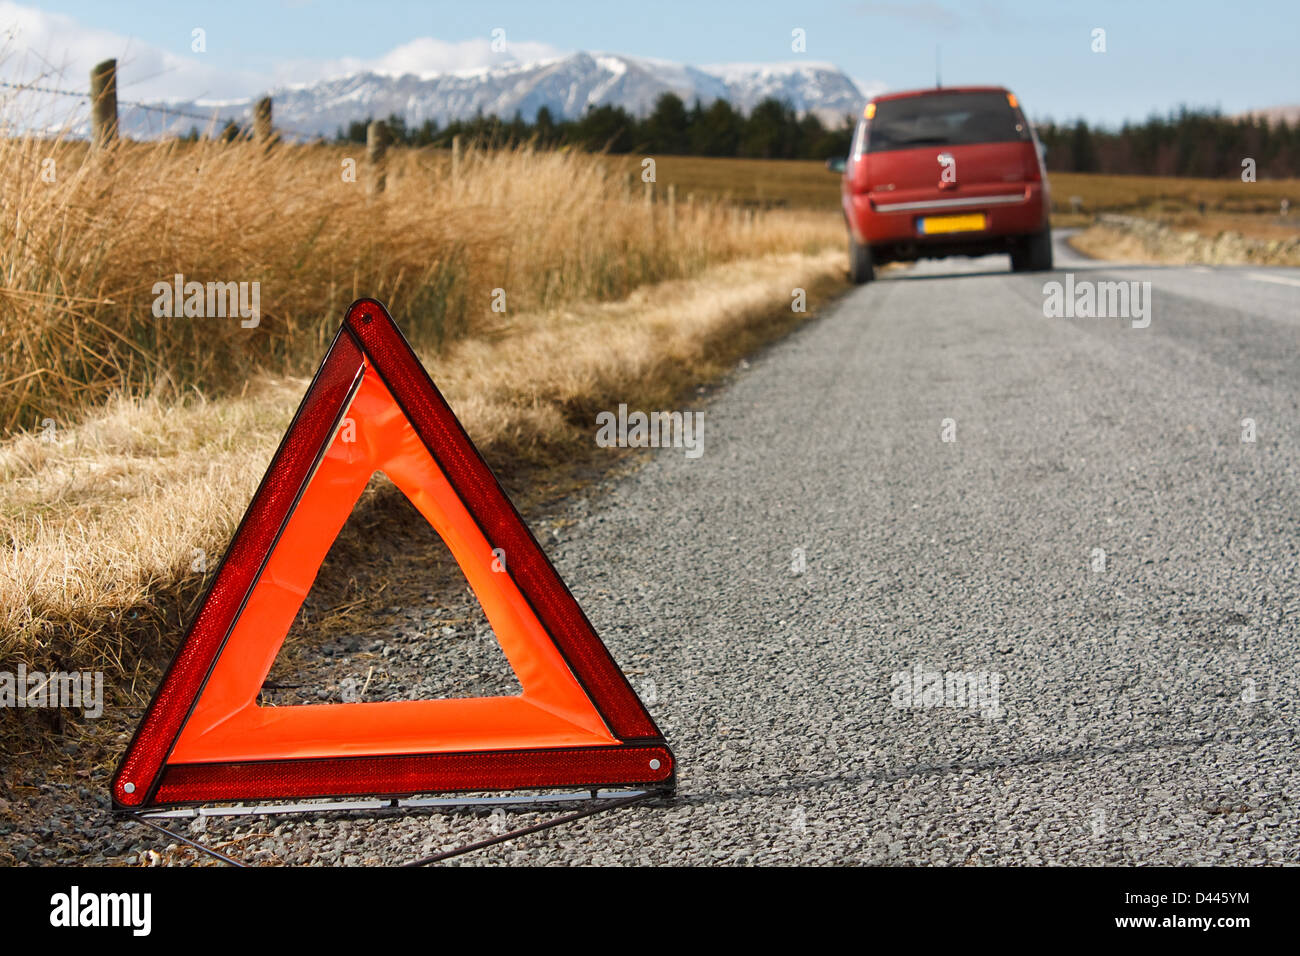 car awaiting recovery after experiencing a breakdown in a remote countryside location in the great outdoors - Stock Image